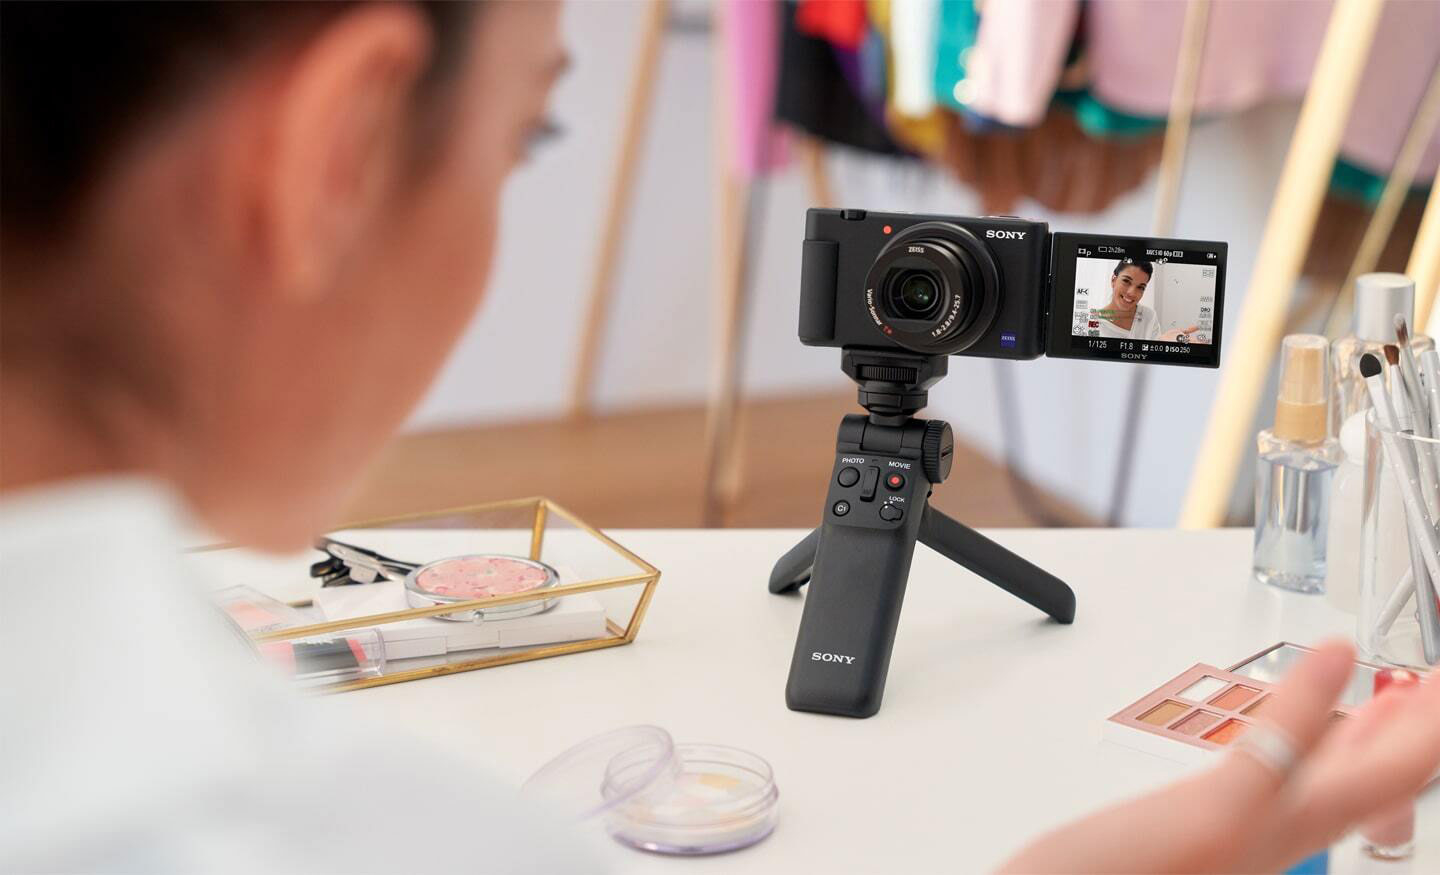 Best Vlogging Cameras Under $100 in 2021 – Cheapest Options